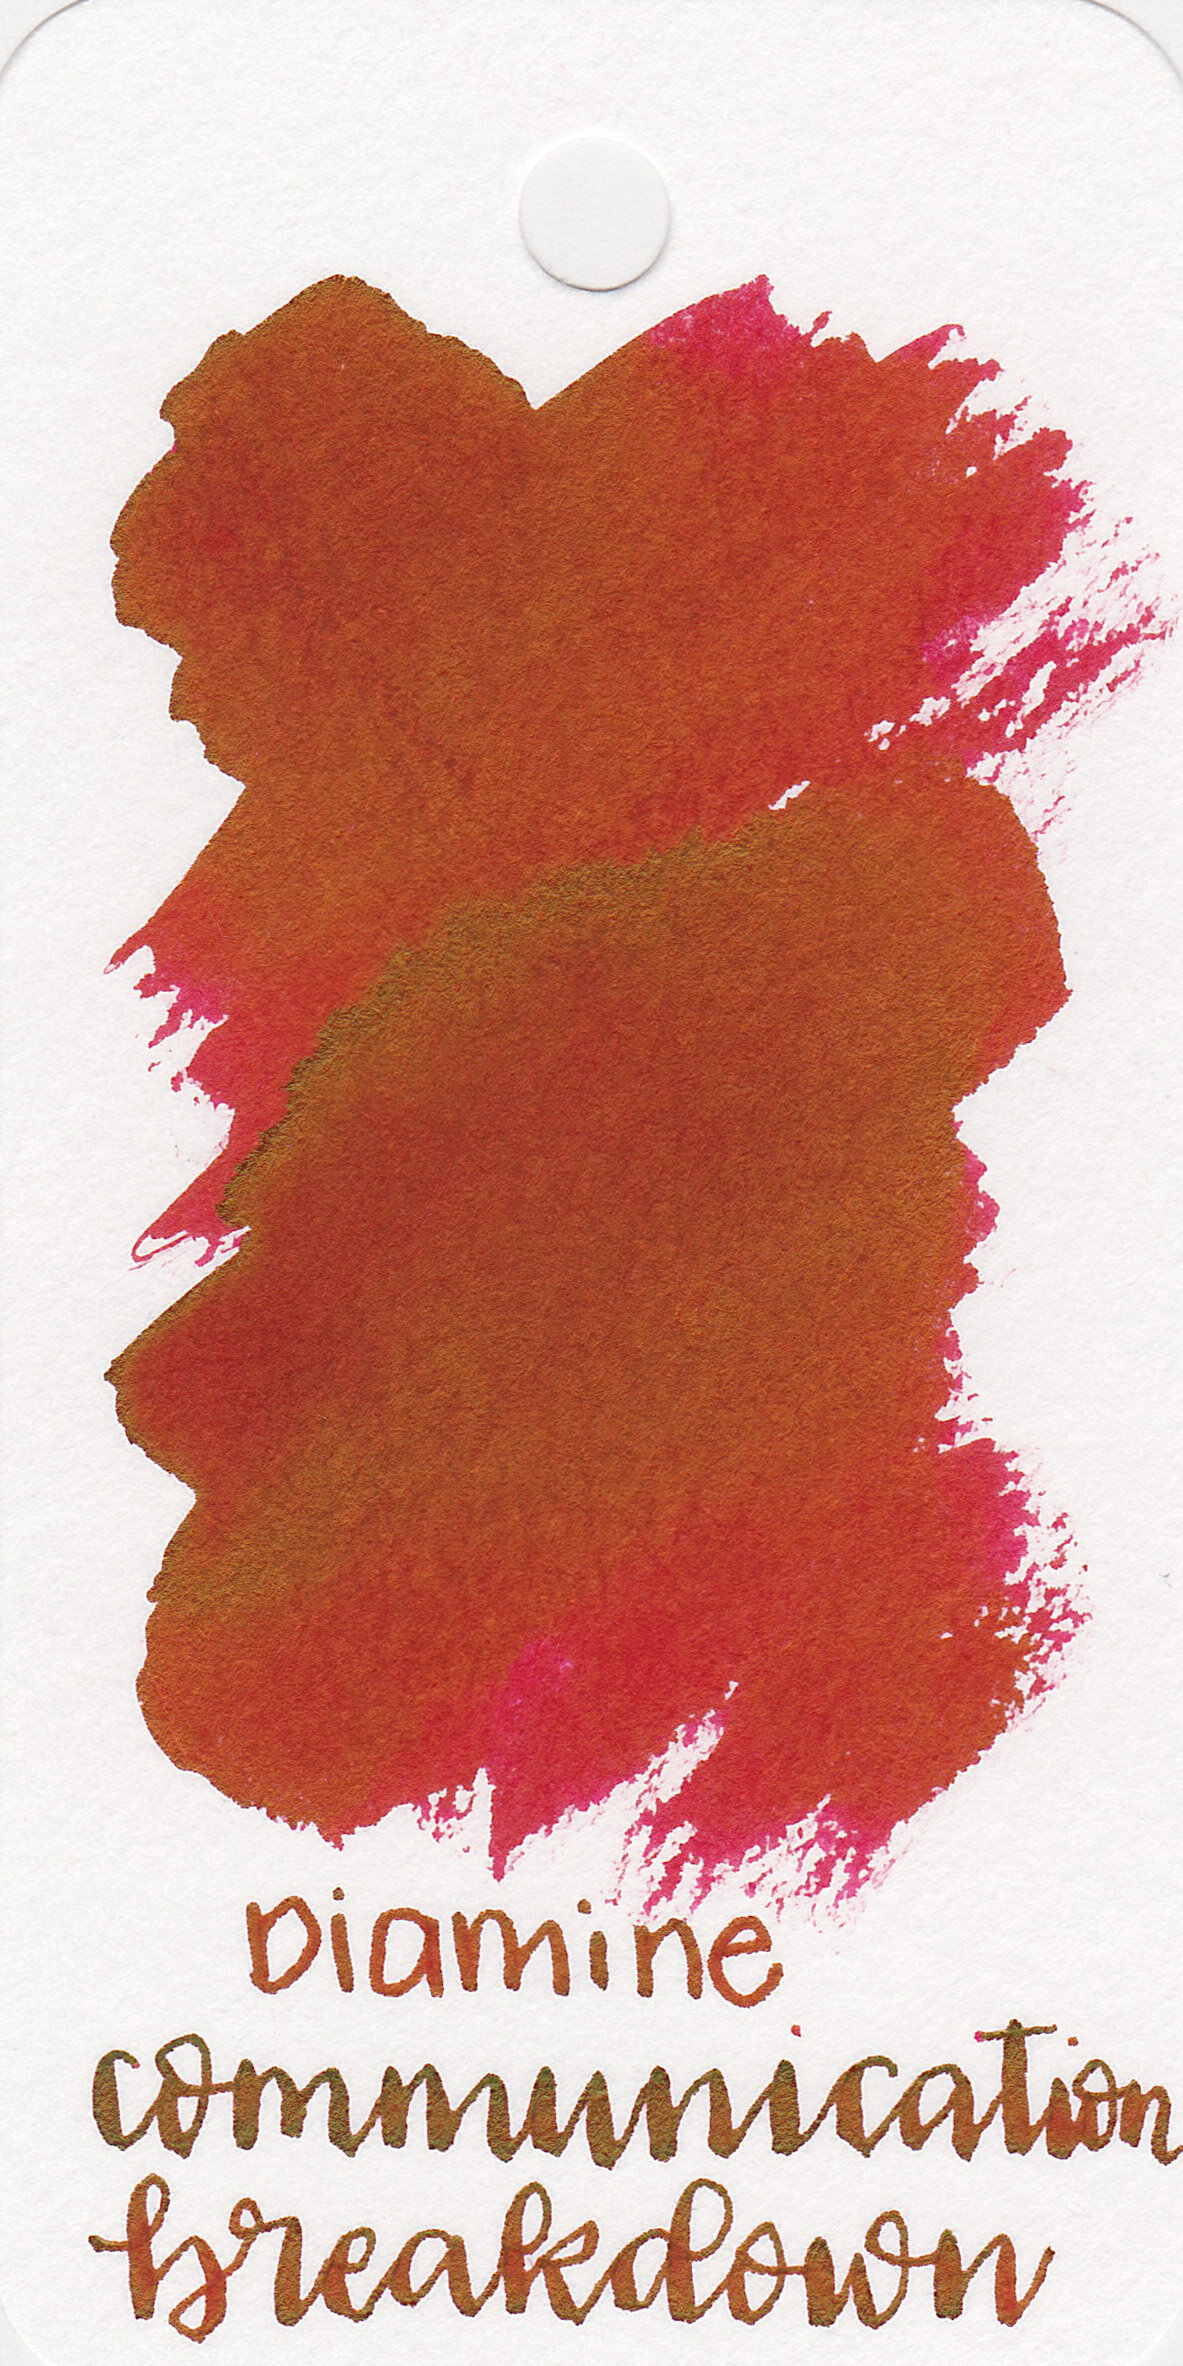 The color: - Communication Breakdown is a vibrant red ink with green sheen.